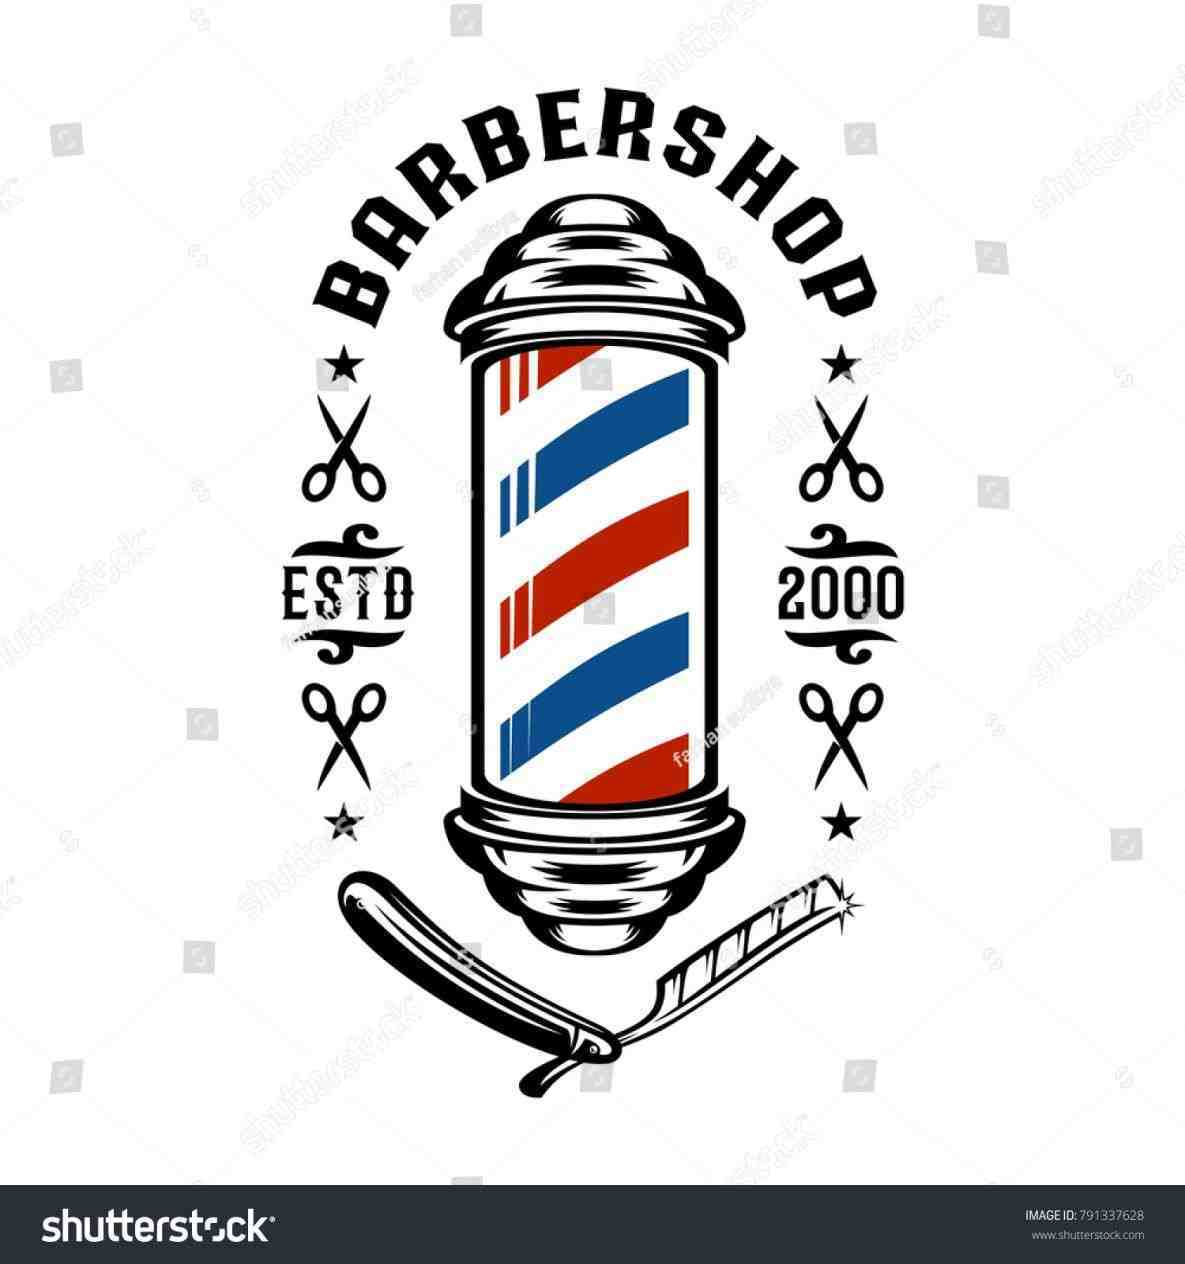 other-icons-from-rhpinterestcom-barber-Barber-Shop-Pole- - Barber PNG HD